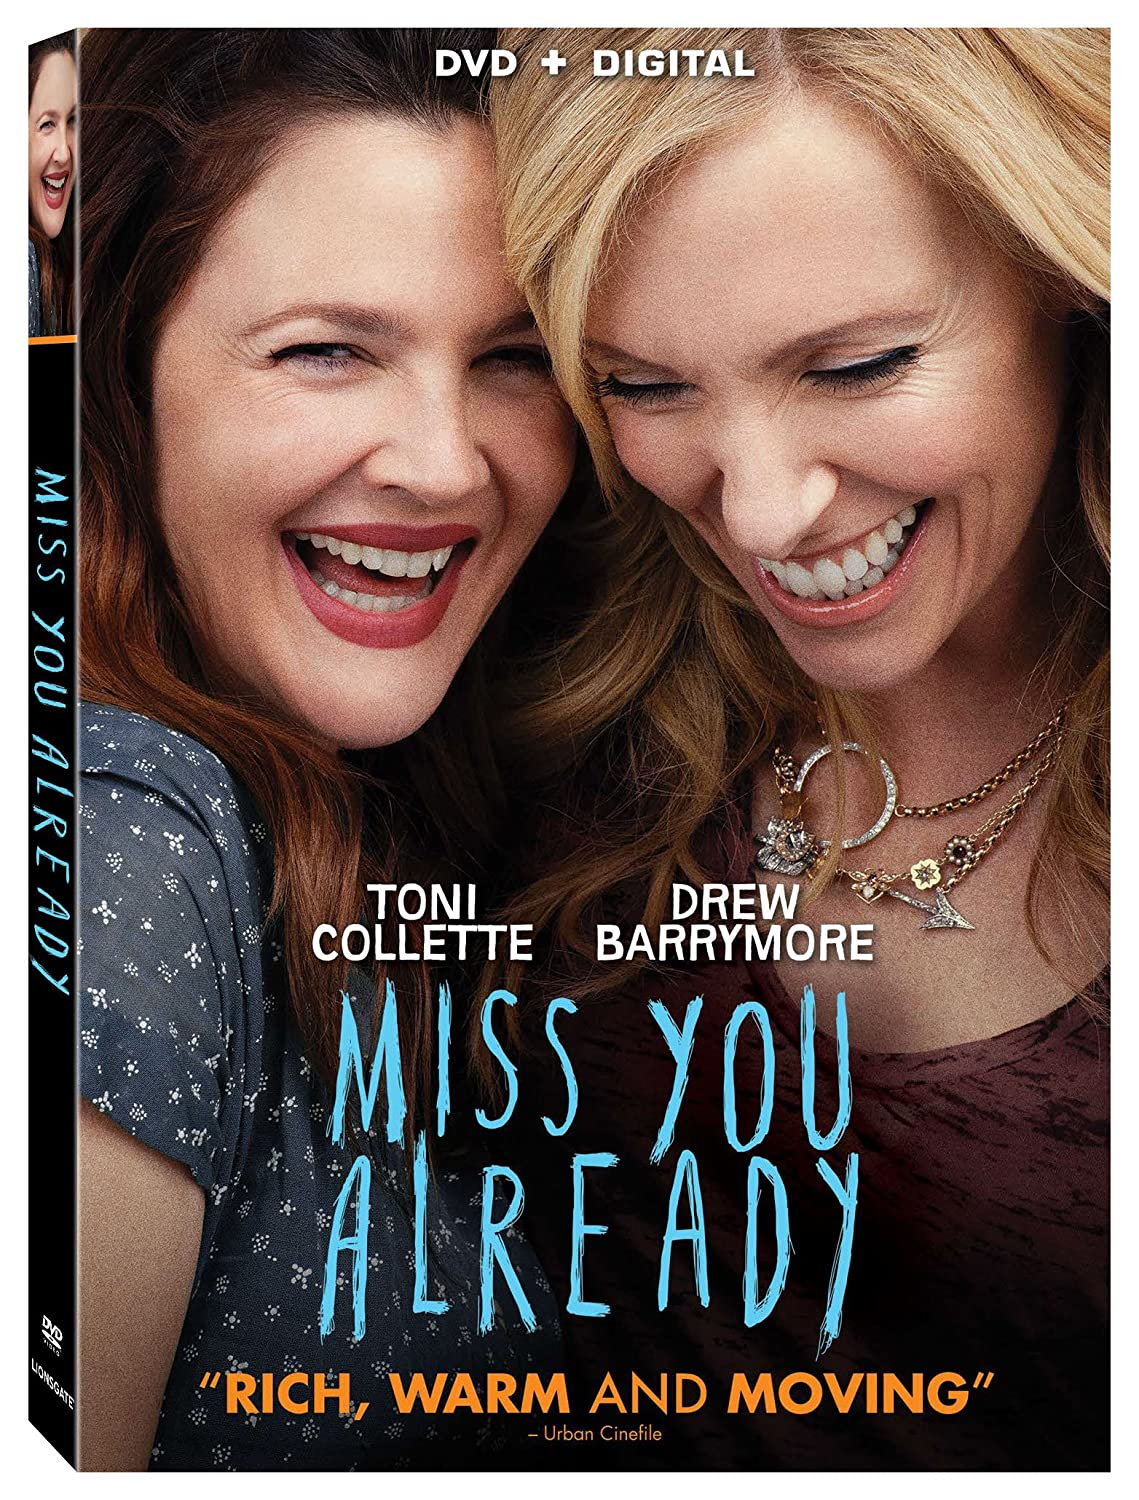 Amazon Com Miss You Already Dvd Digital Drew Barrymore Toni Collette Dominic Cooper Catherine Hardwicke Movies Tv It's fine i came up with a story for it. miss you already dvd digital